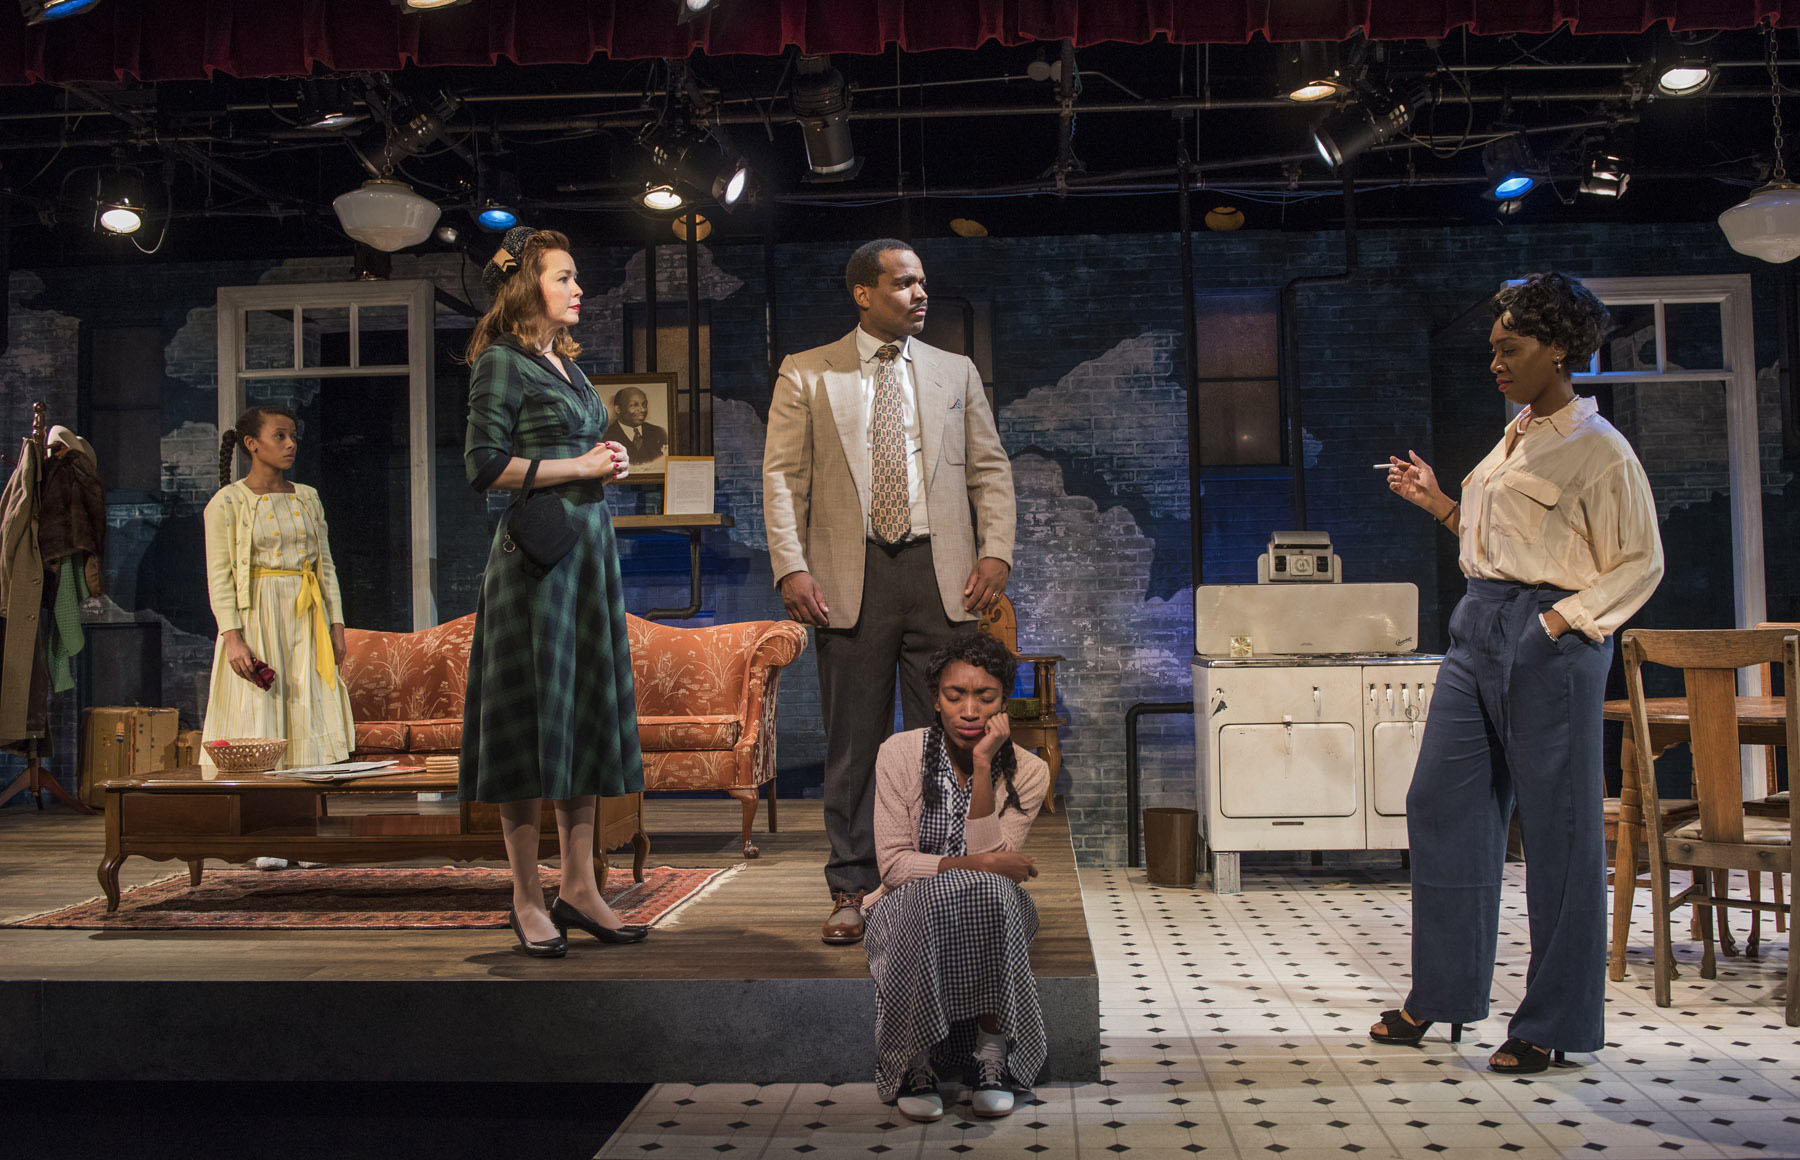 3.-Brandi-Jiminez-Lee-Emily-Tate-Terence-Sims-Chanell-Bell-and-Brianna-Buckley-in-Raven-Theatre's-production-of-CRUMBS-FROM-THE-TABLE-OF-JOY.jpg